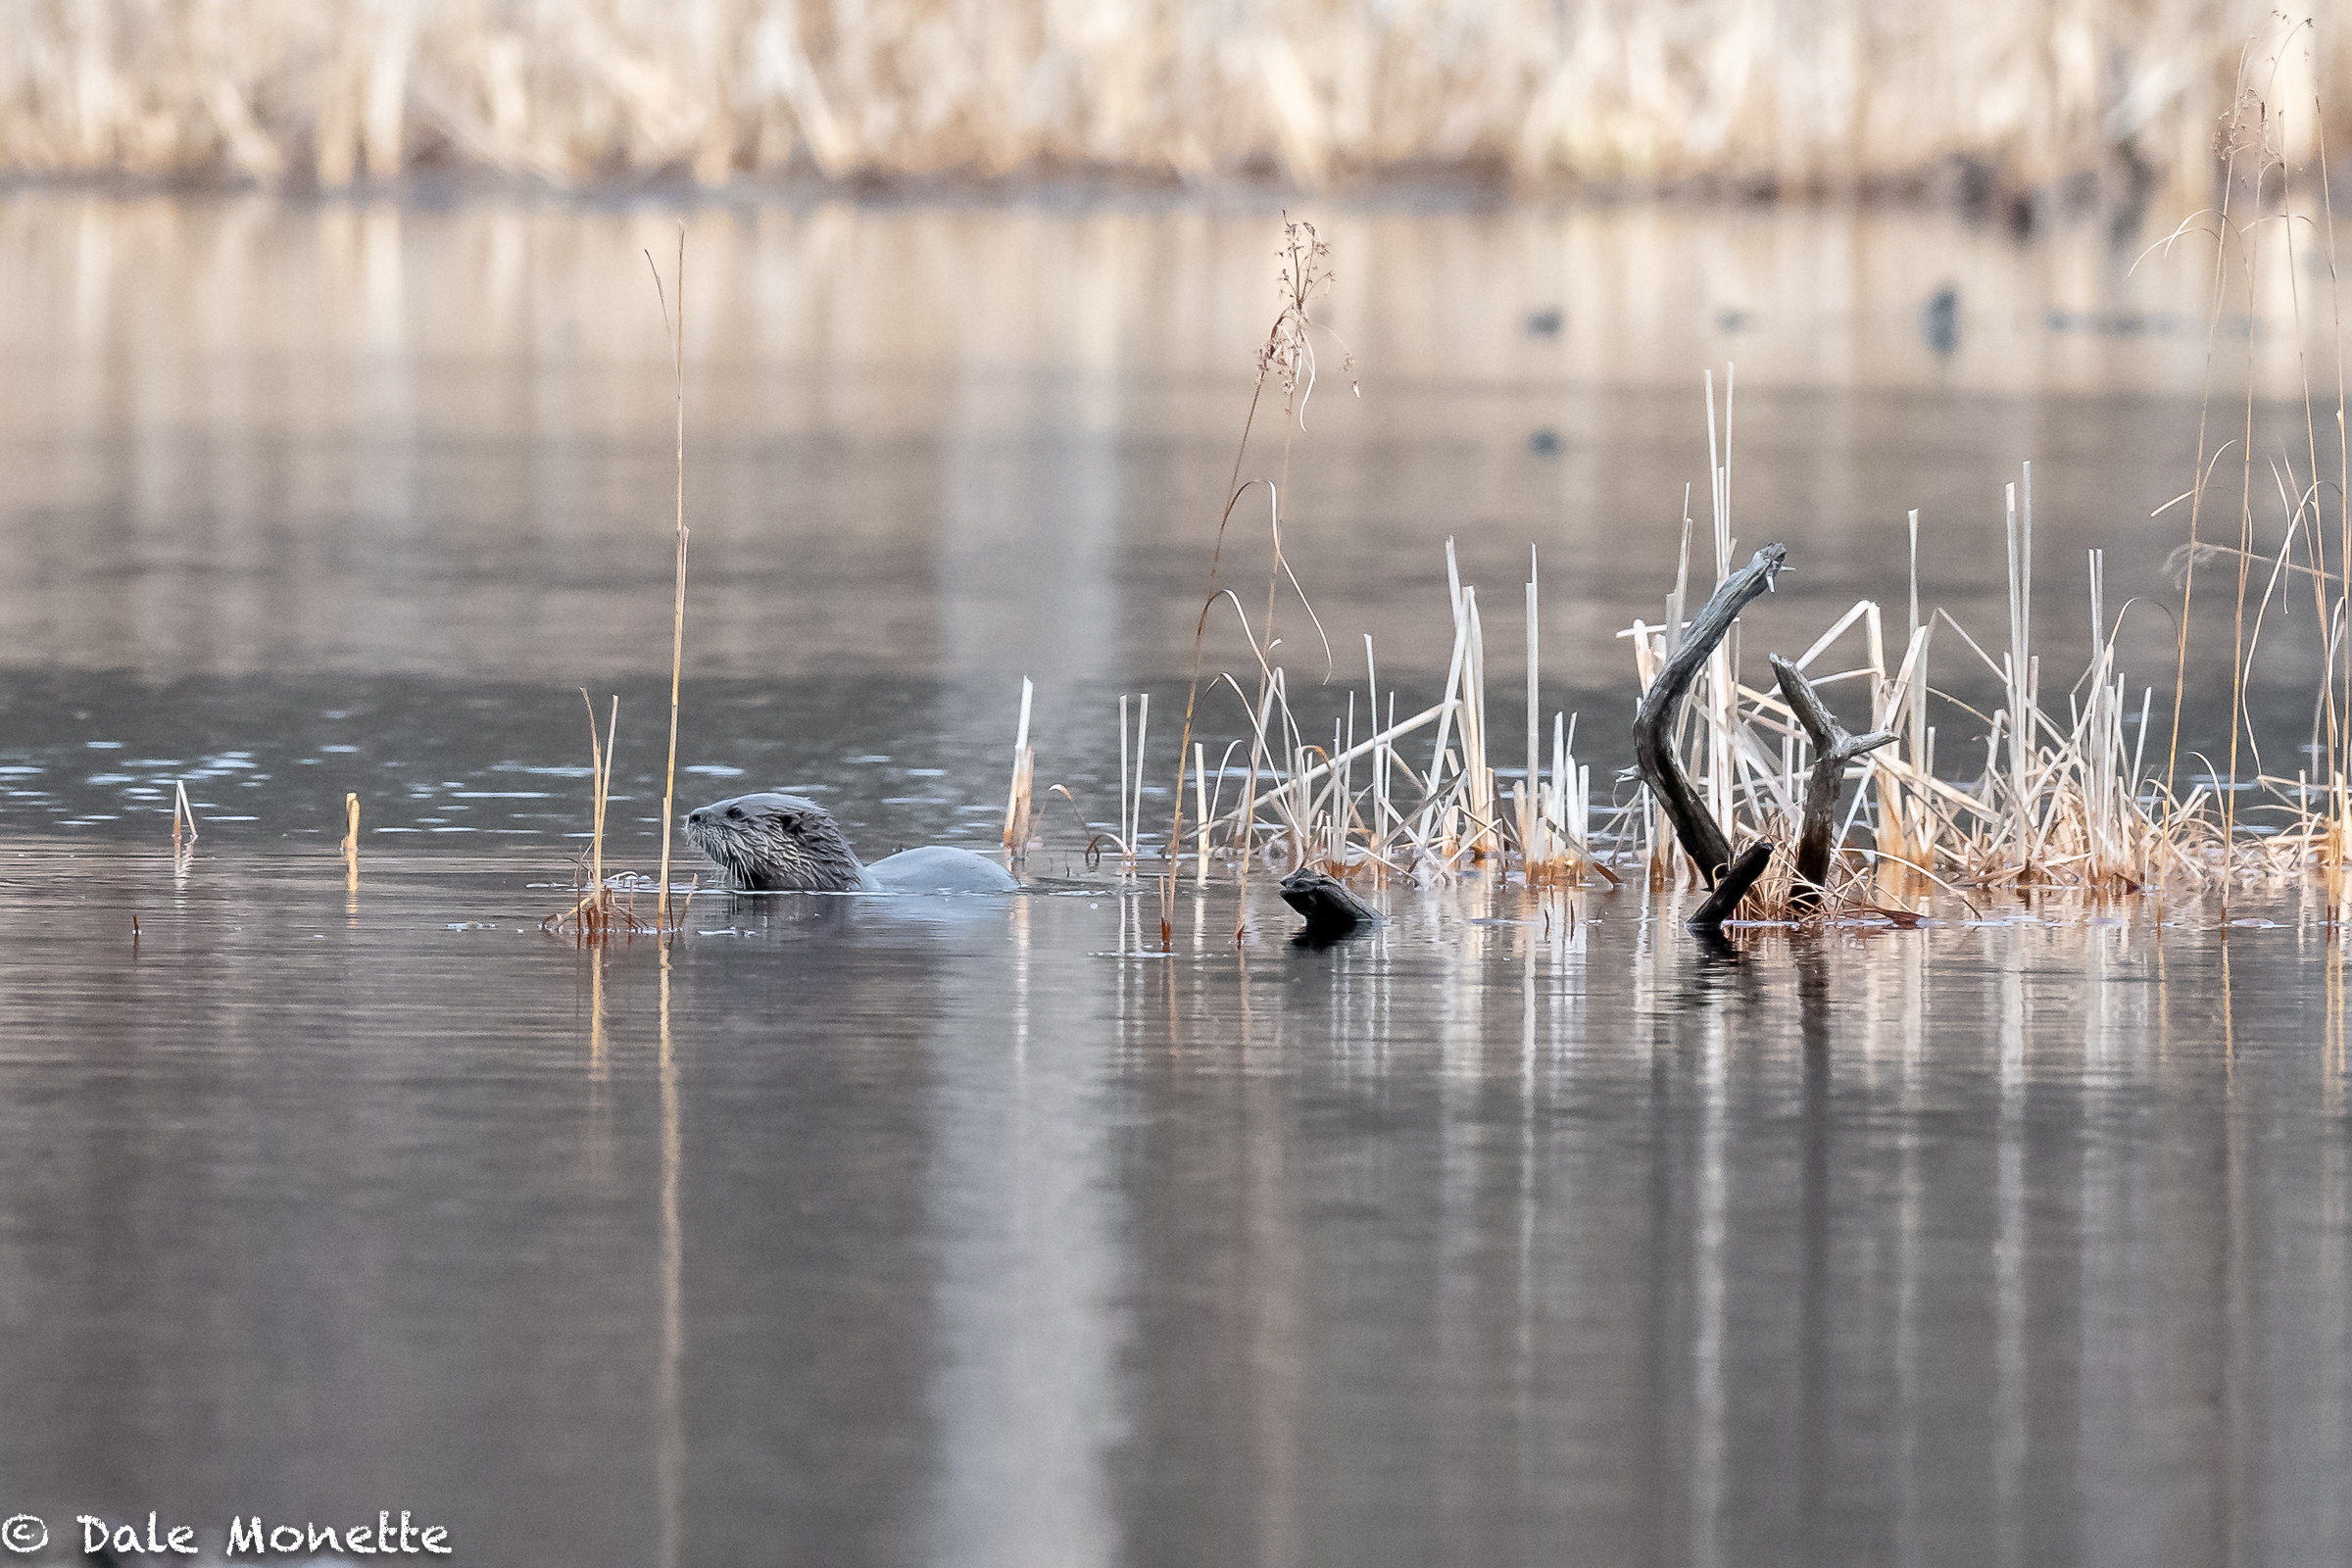 The ice finally left the local ponds for the most part. The first thing I saw was this otter that seen this same guy for about 5 years in the same pond. He has a light blond patch of hair on the right side. You can see him last spring at the end of this sequence of images.